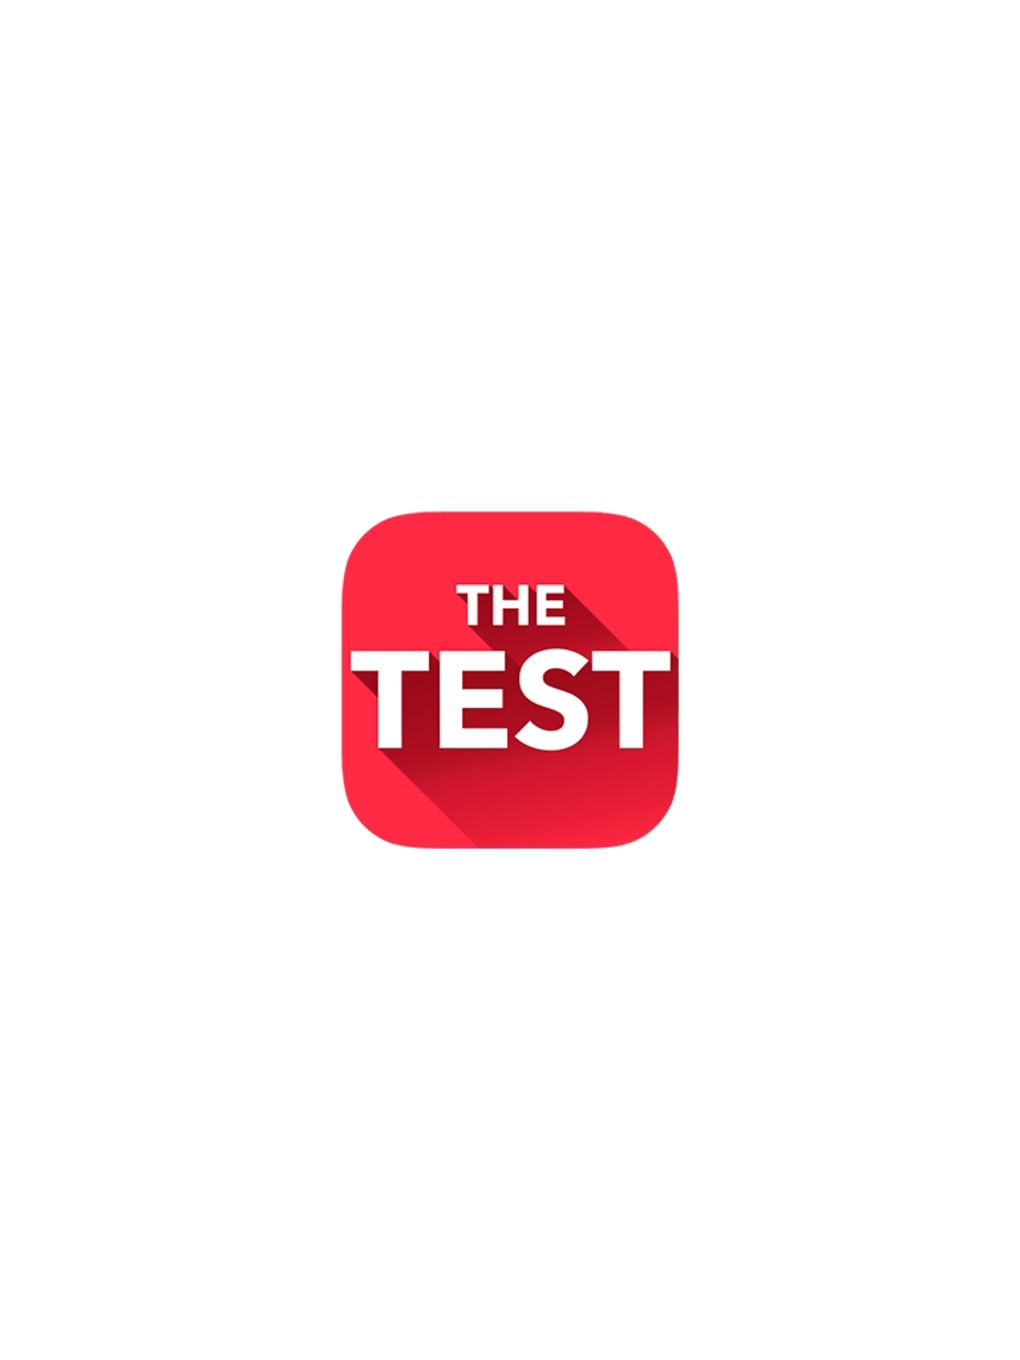 The test fun for friends para android download prs stopboris Gallery